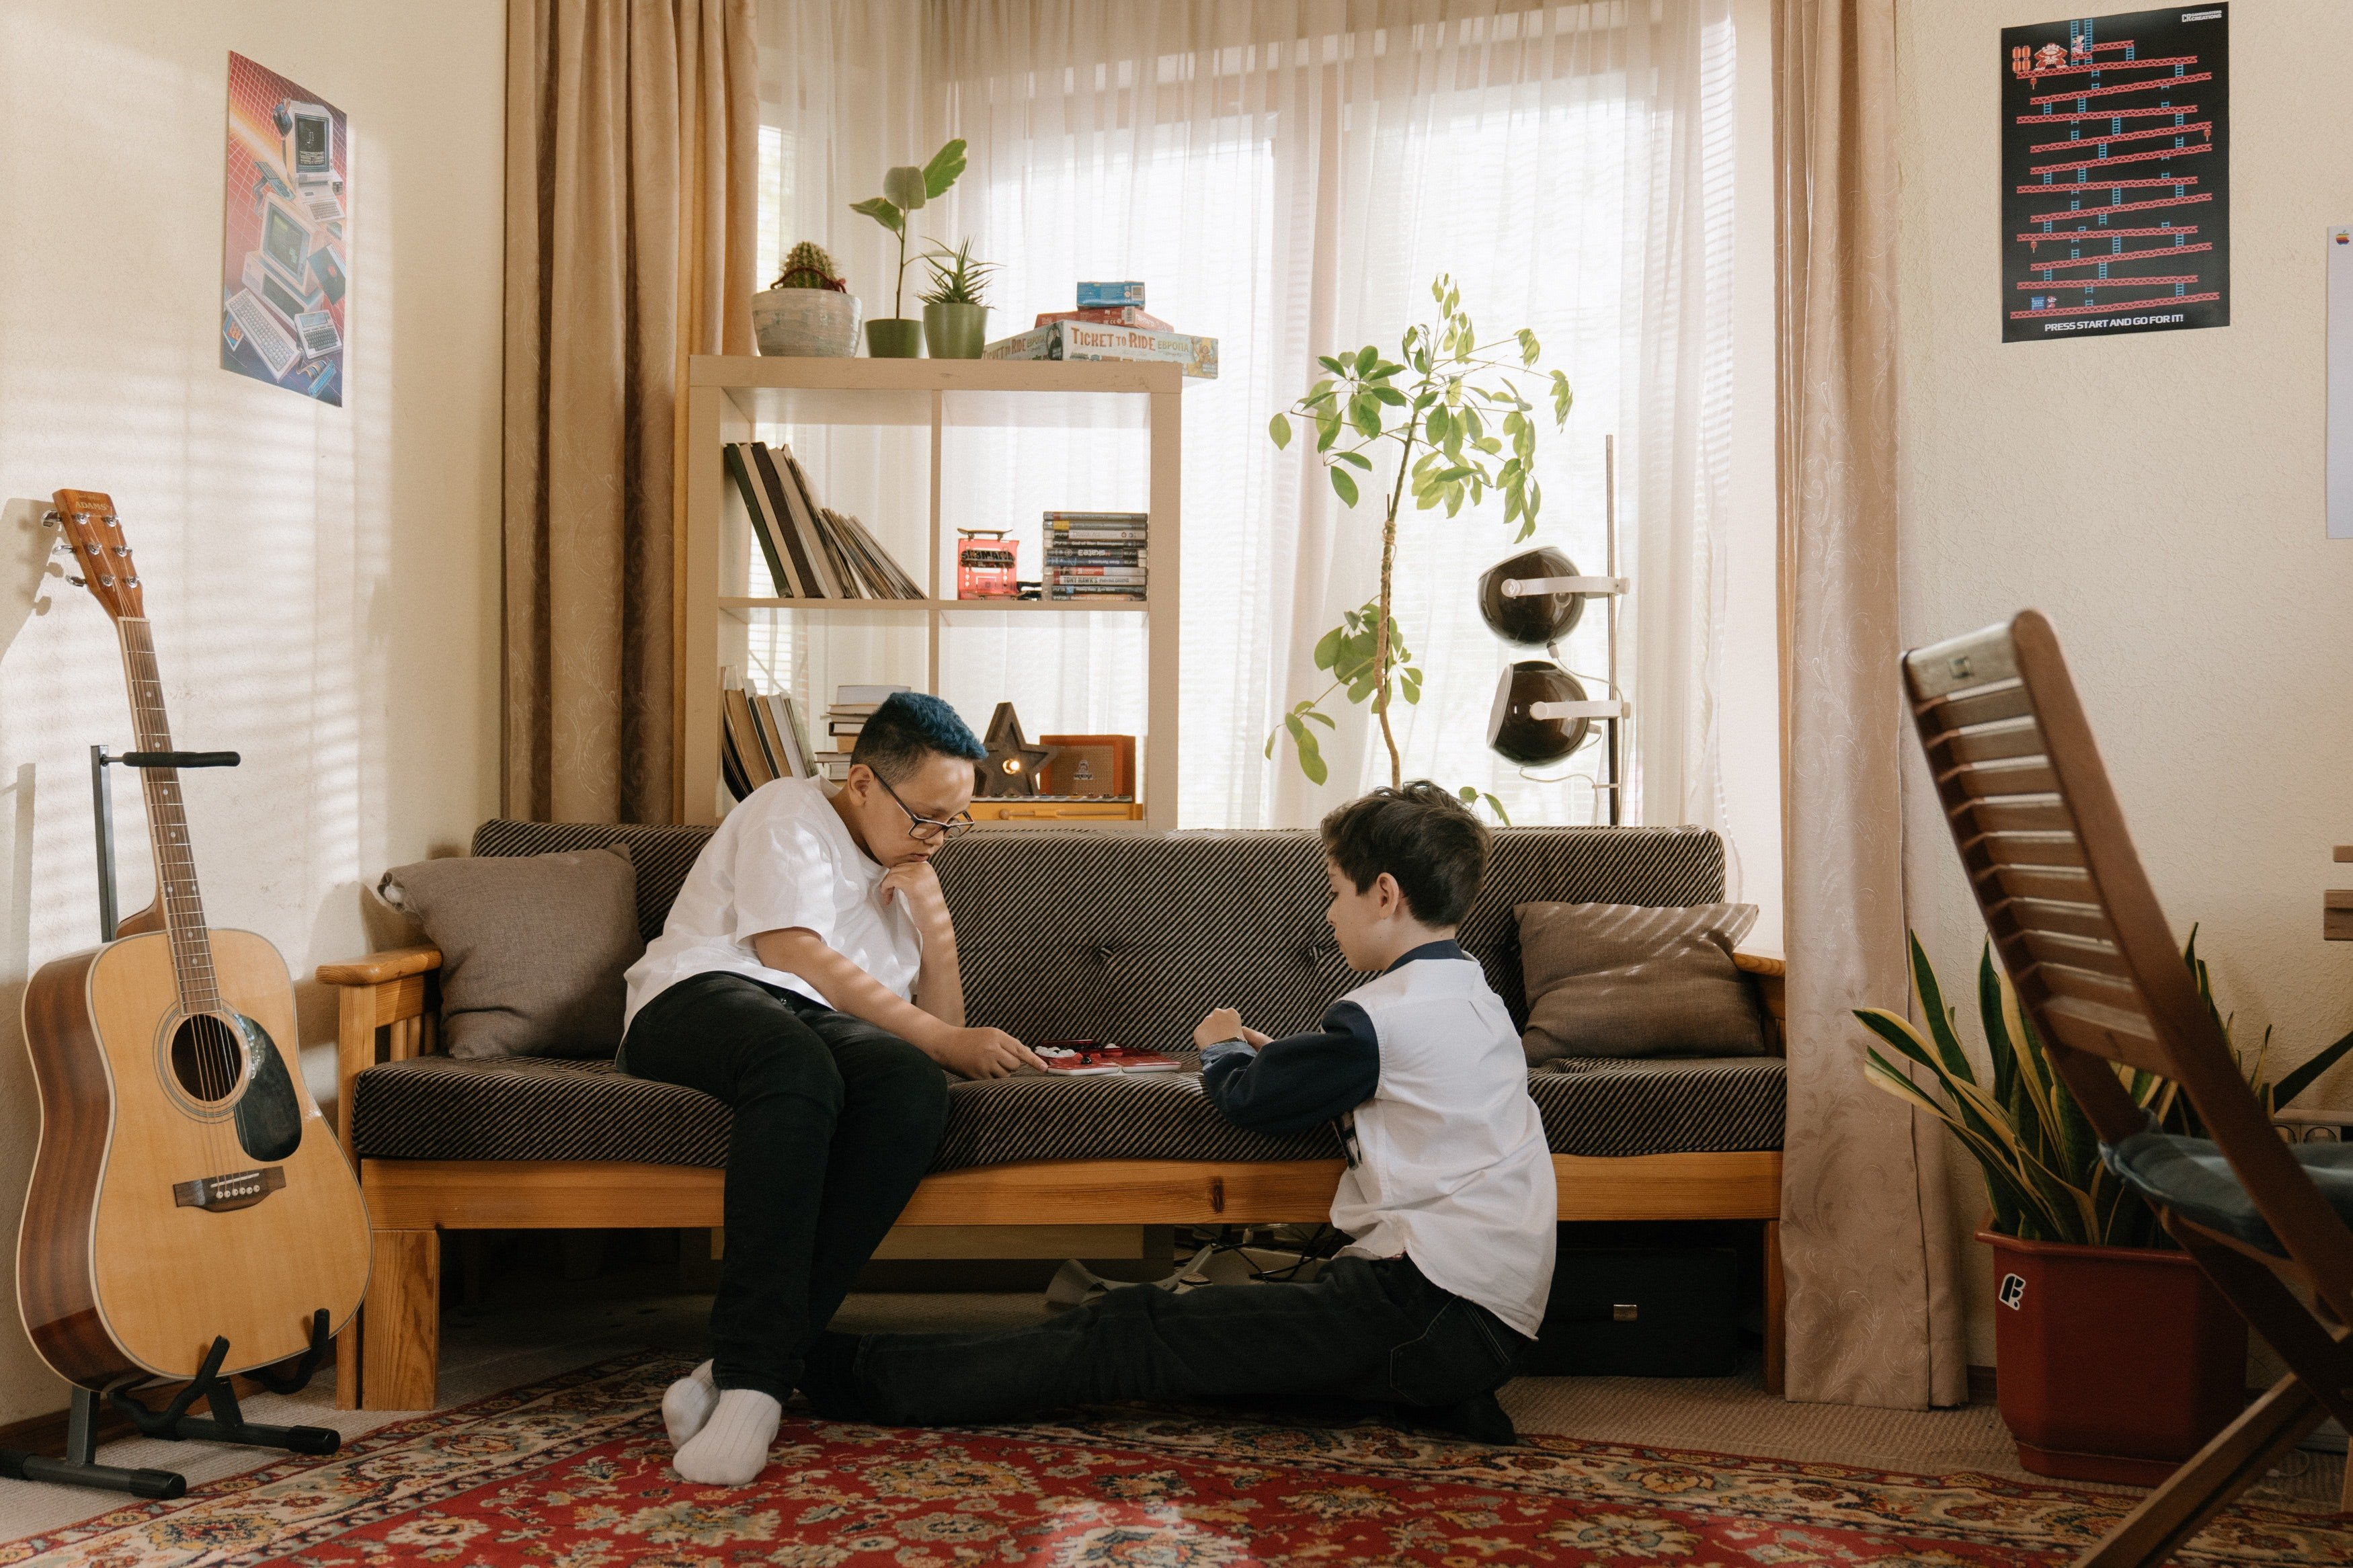 Two children playing at home. | Photo: Pexels